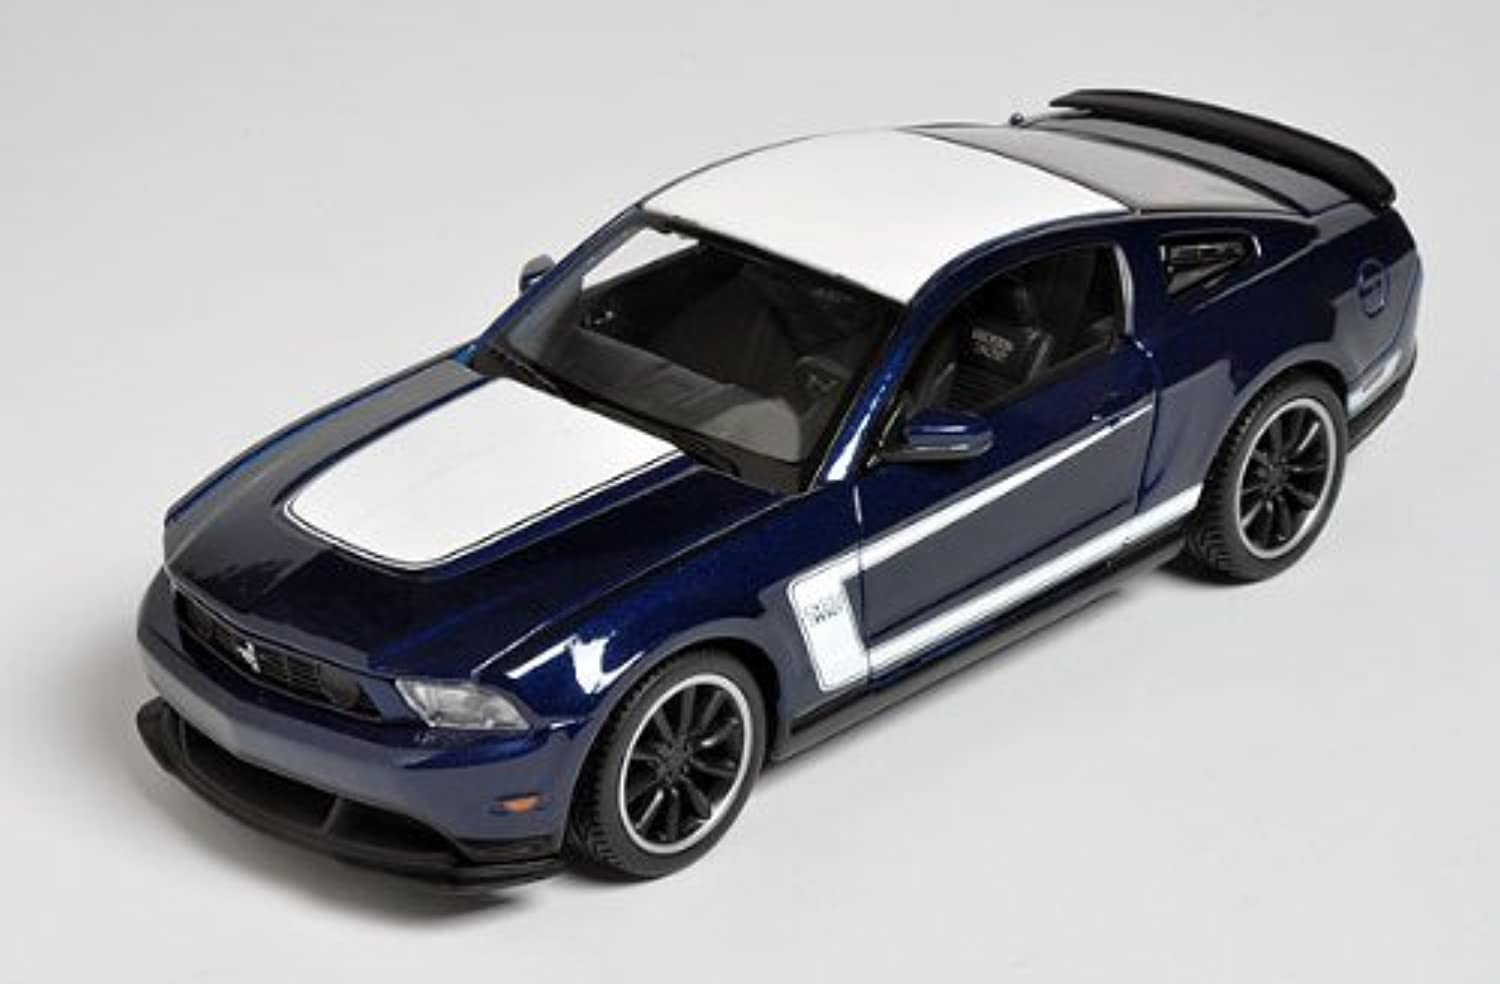 2011 Ford Mustang Boss 302 bluee 1 24 by Maisto 31269 by Maisto